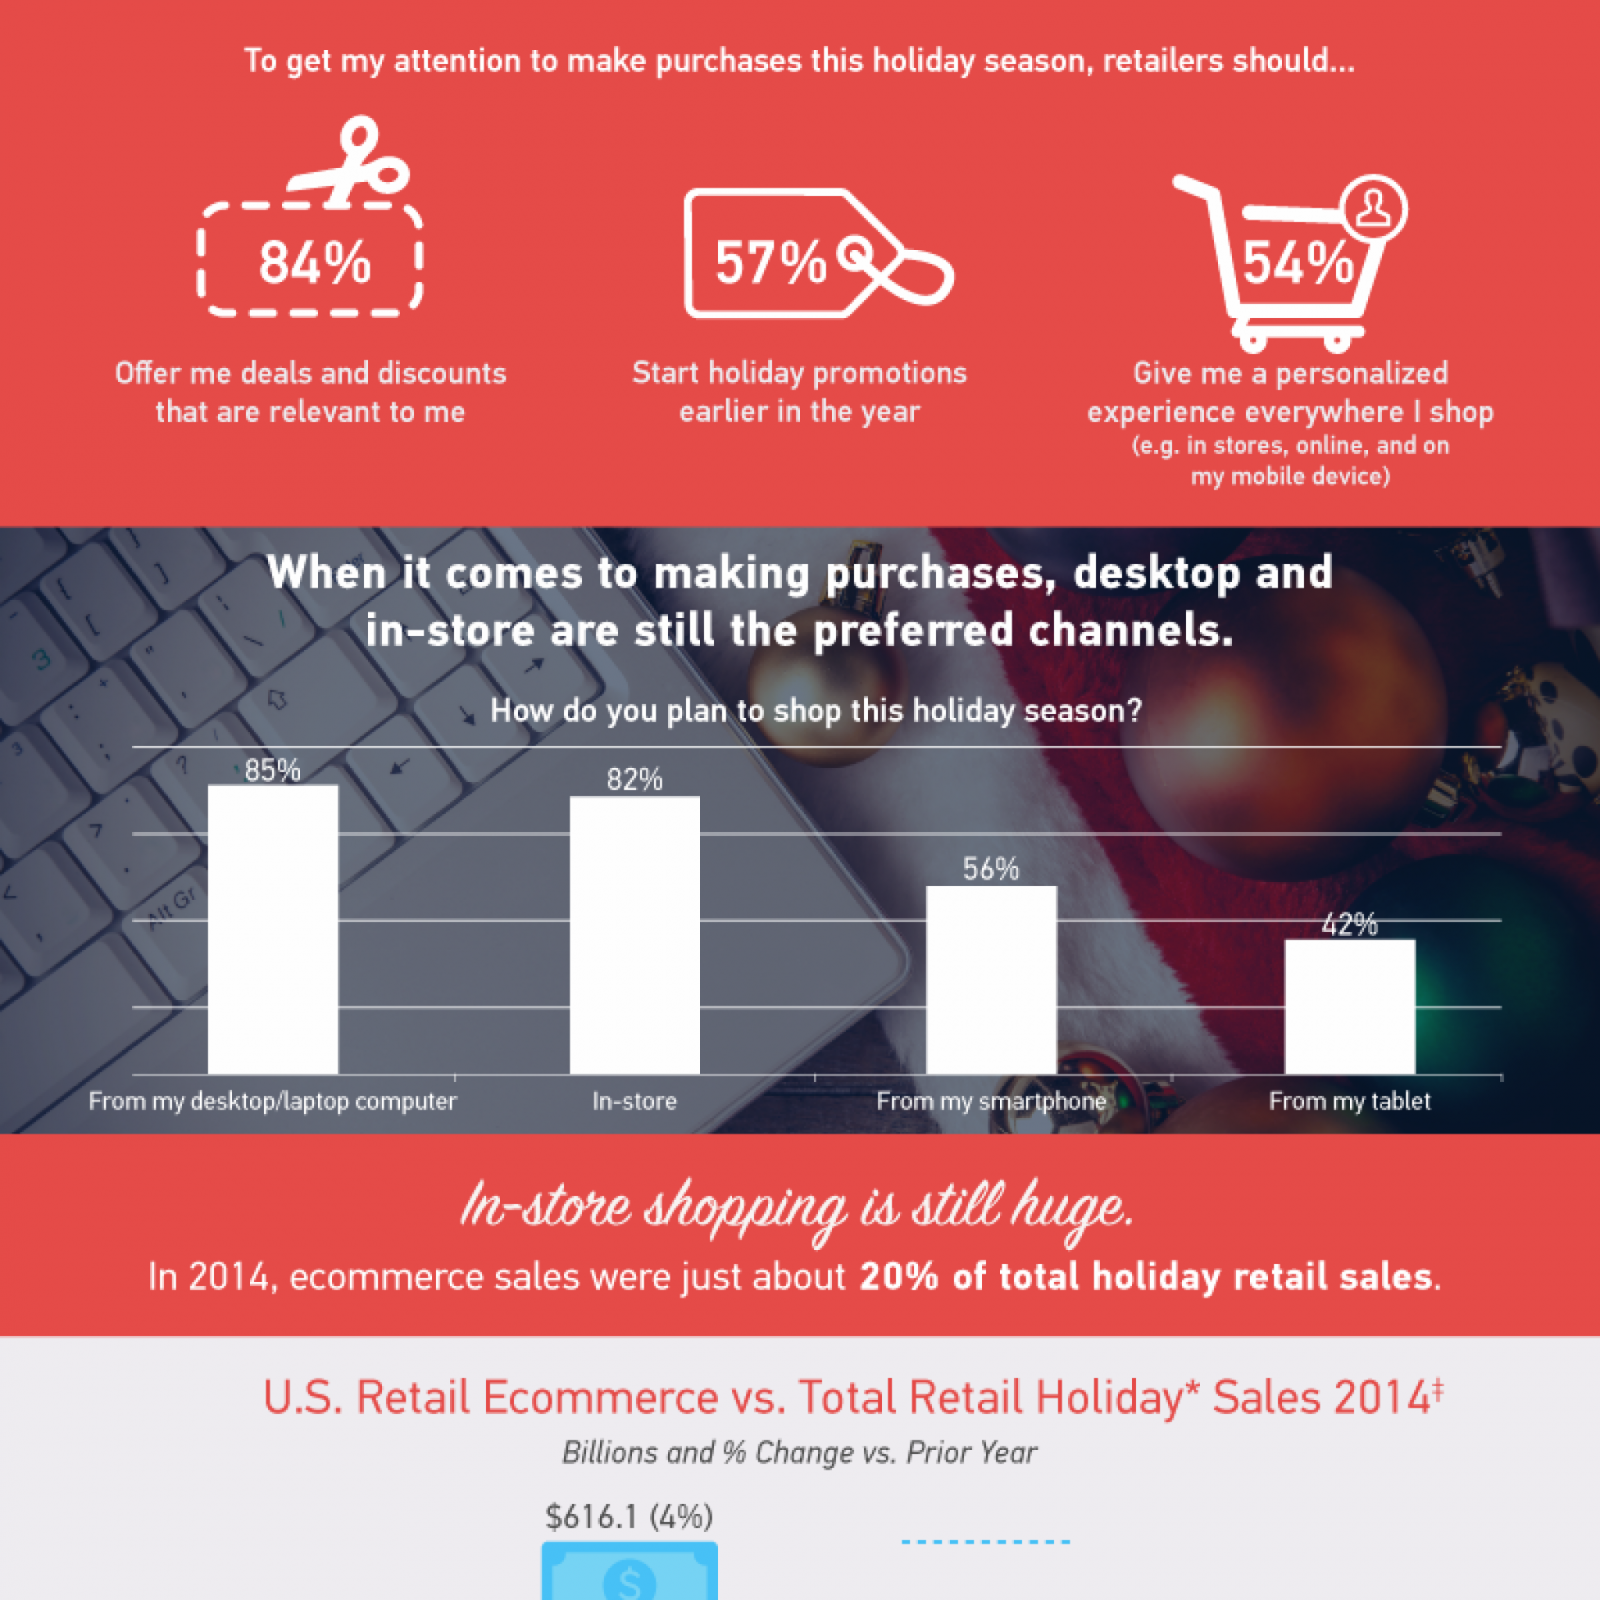 How shoppers intend to browse and shop across devices in the 2015 holiday season.